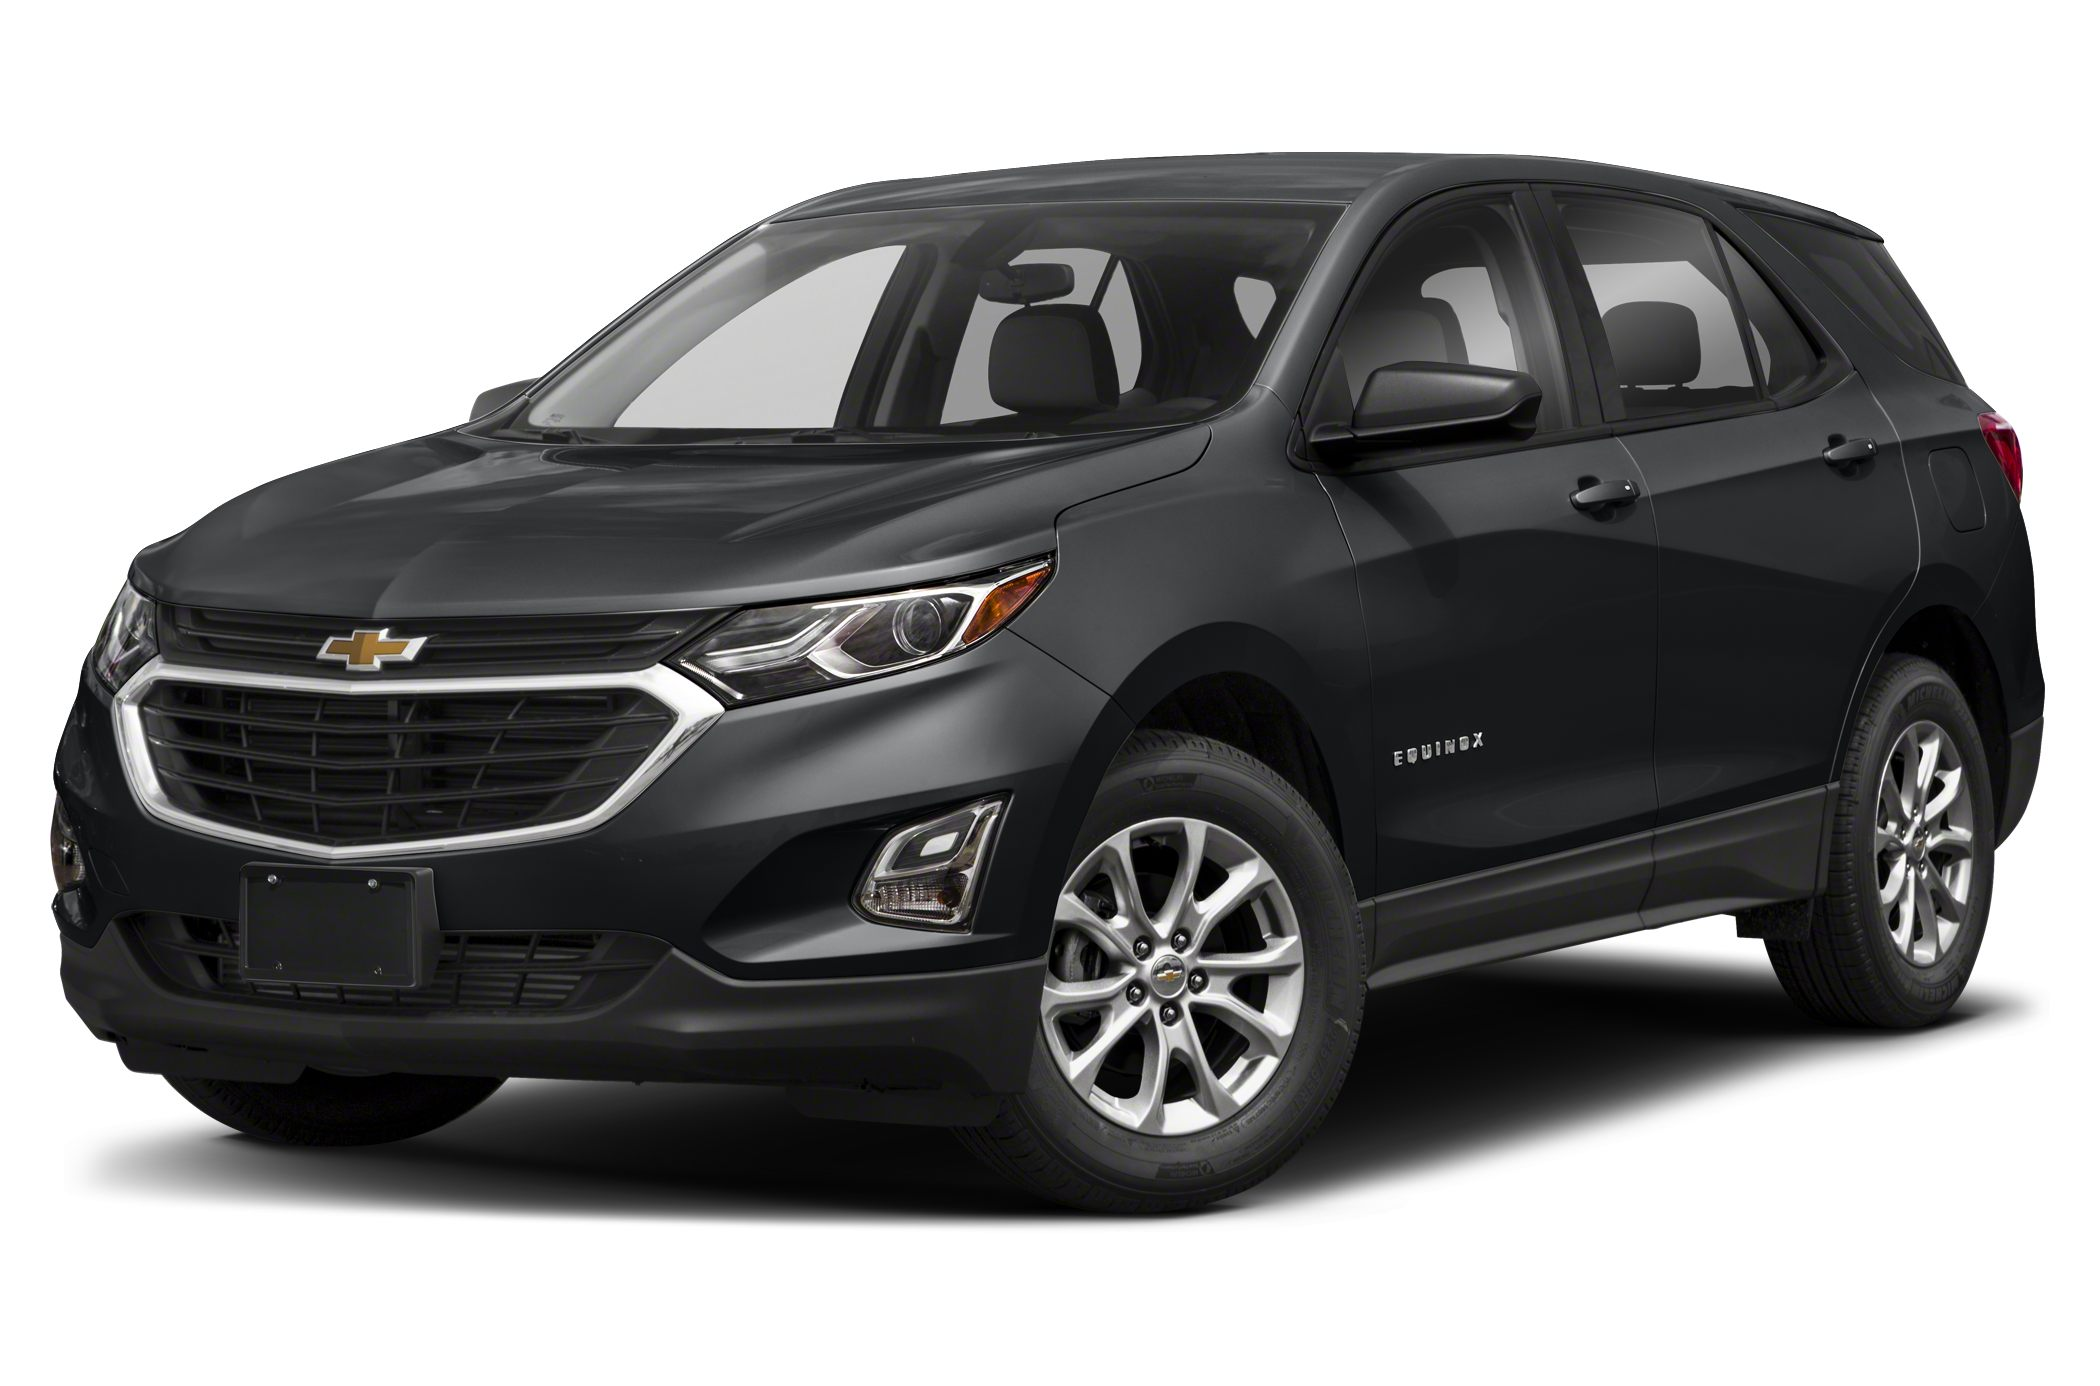 Subaru Lease Deals >> See 2019 Chevrolet Equinox Color Options - CarsDirect